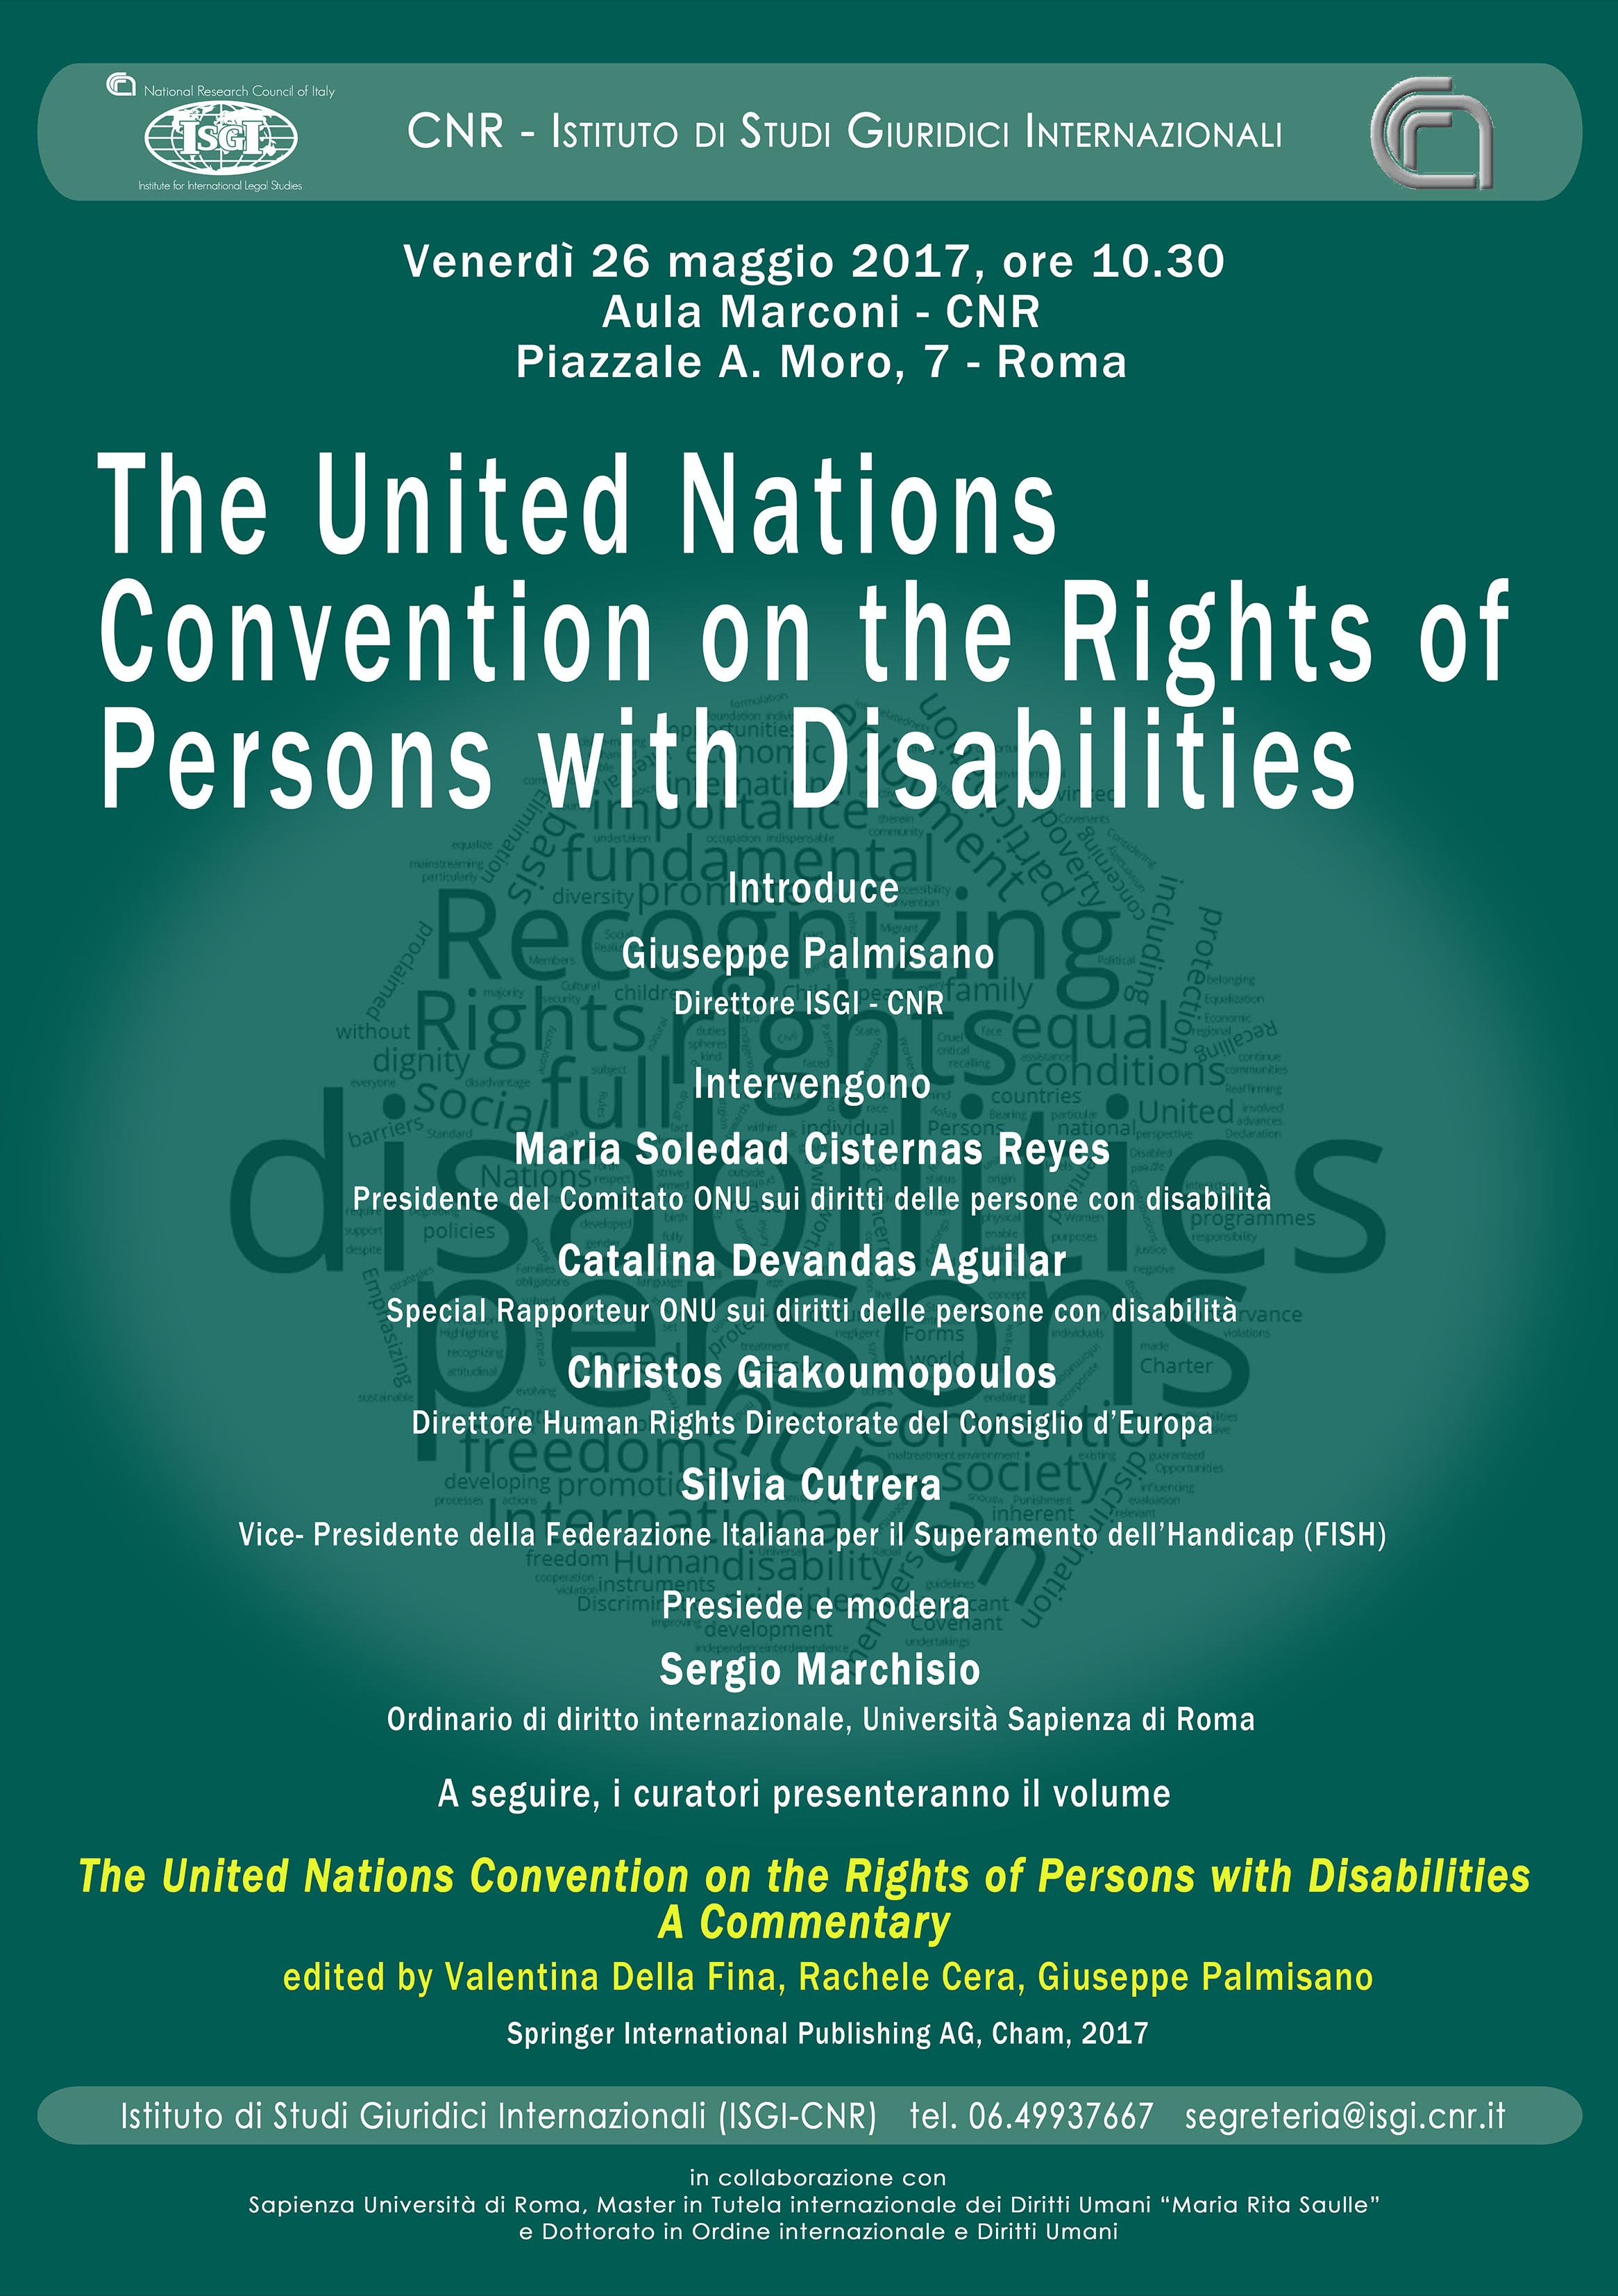 The United Nations Convention on the Rights of Persons with Disabilities 26 maggio 2017, Roma